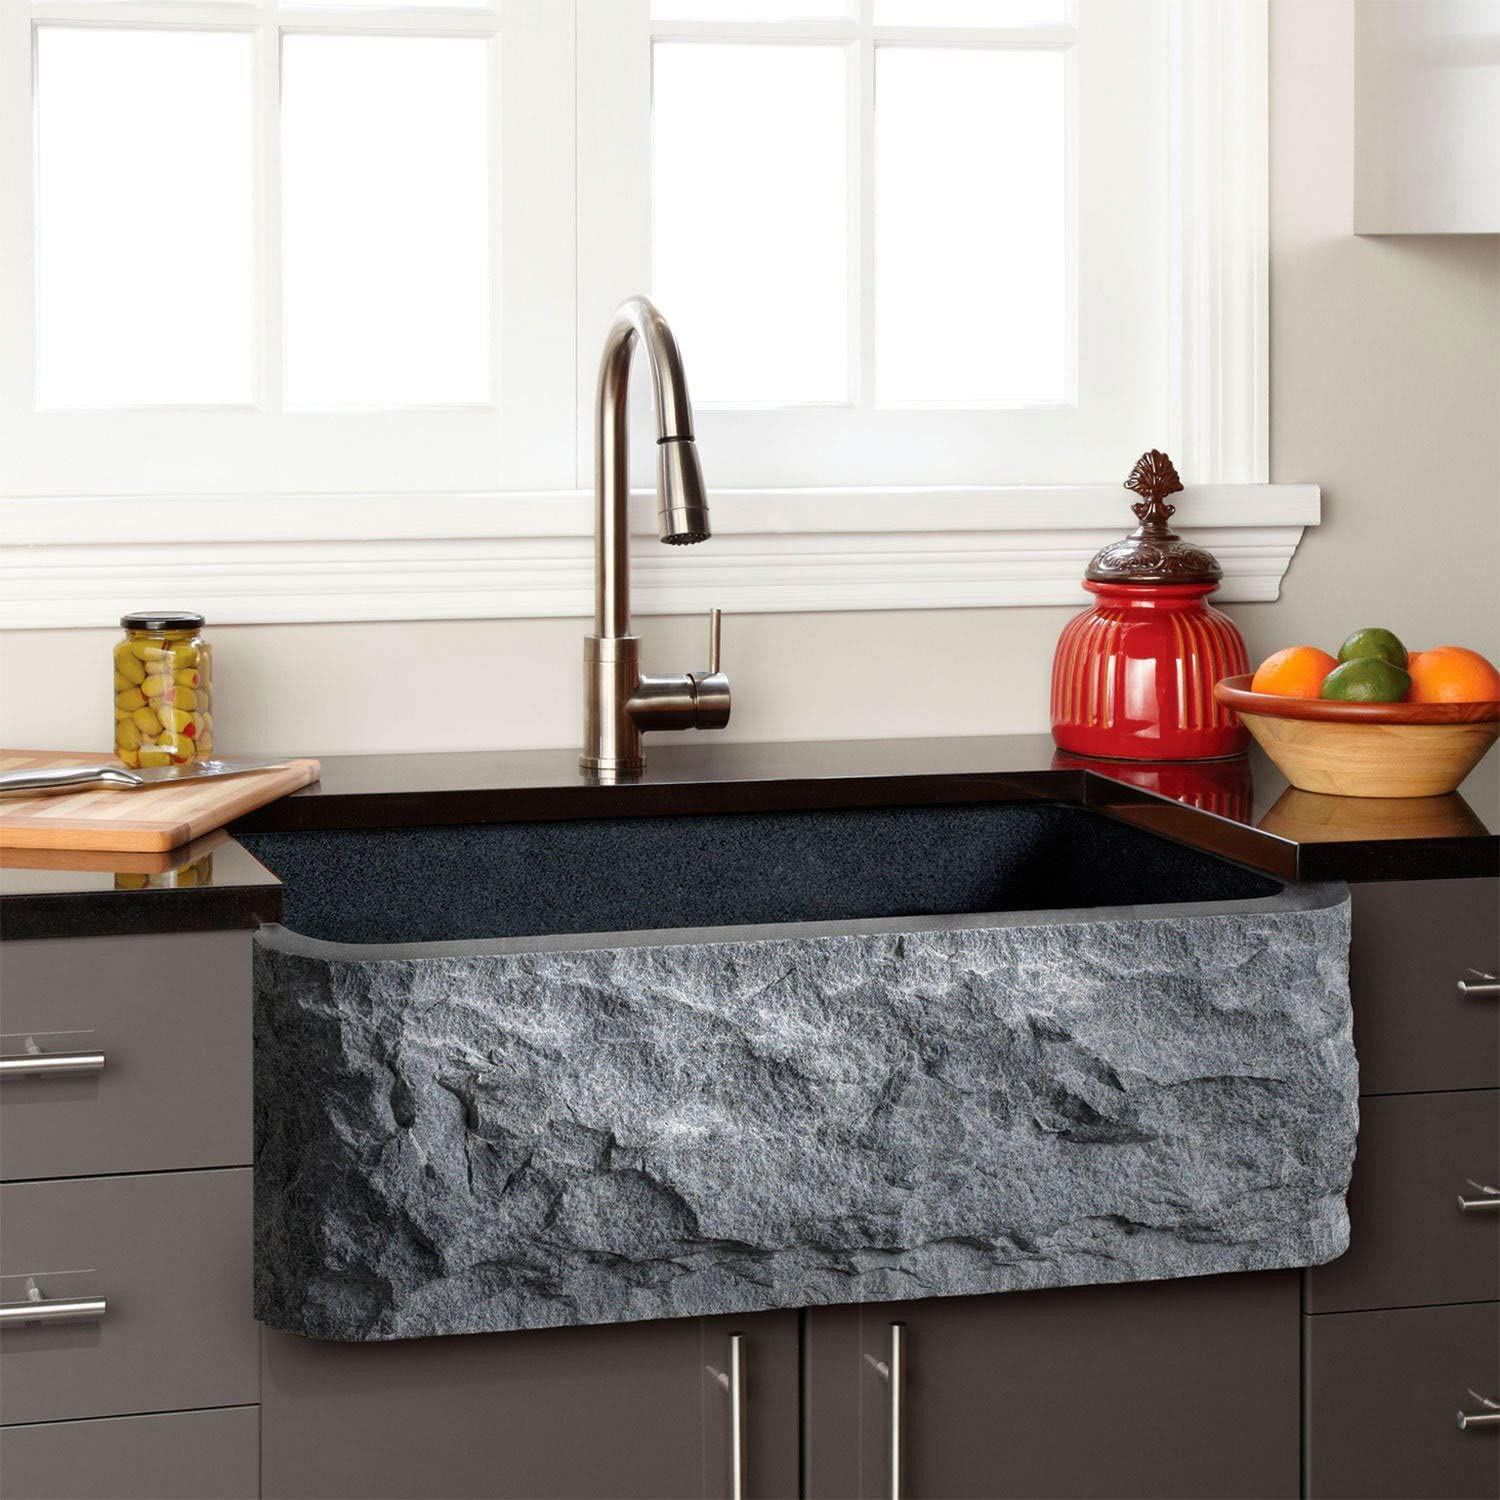 Signature Hardware Granite Farmhouse Sink